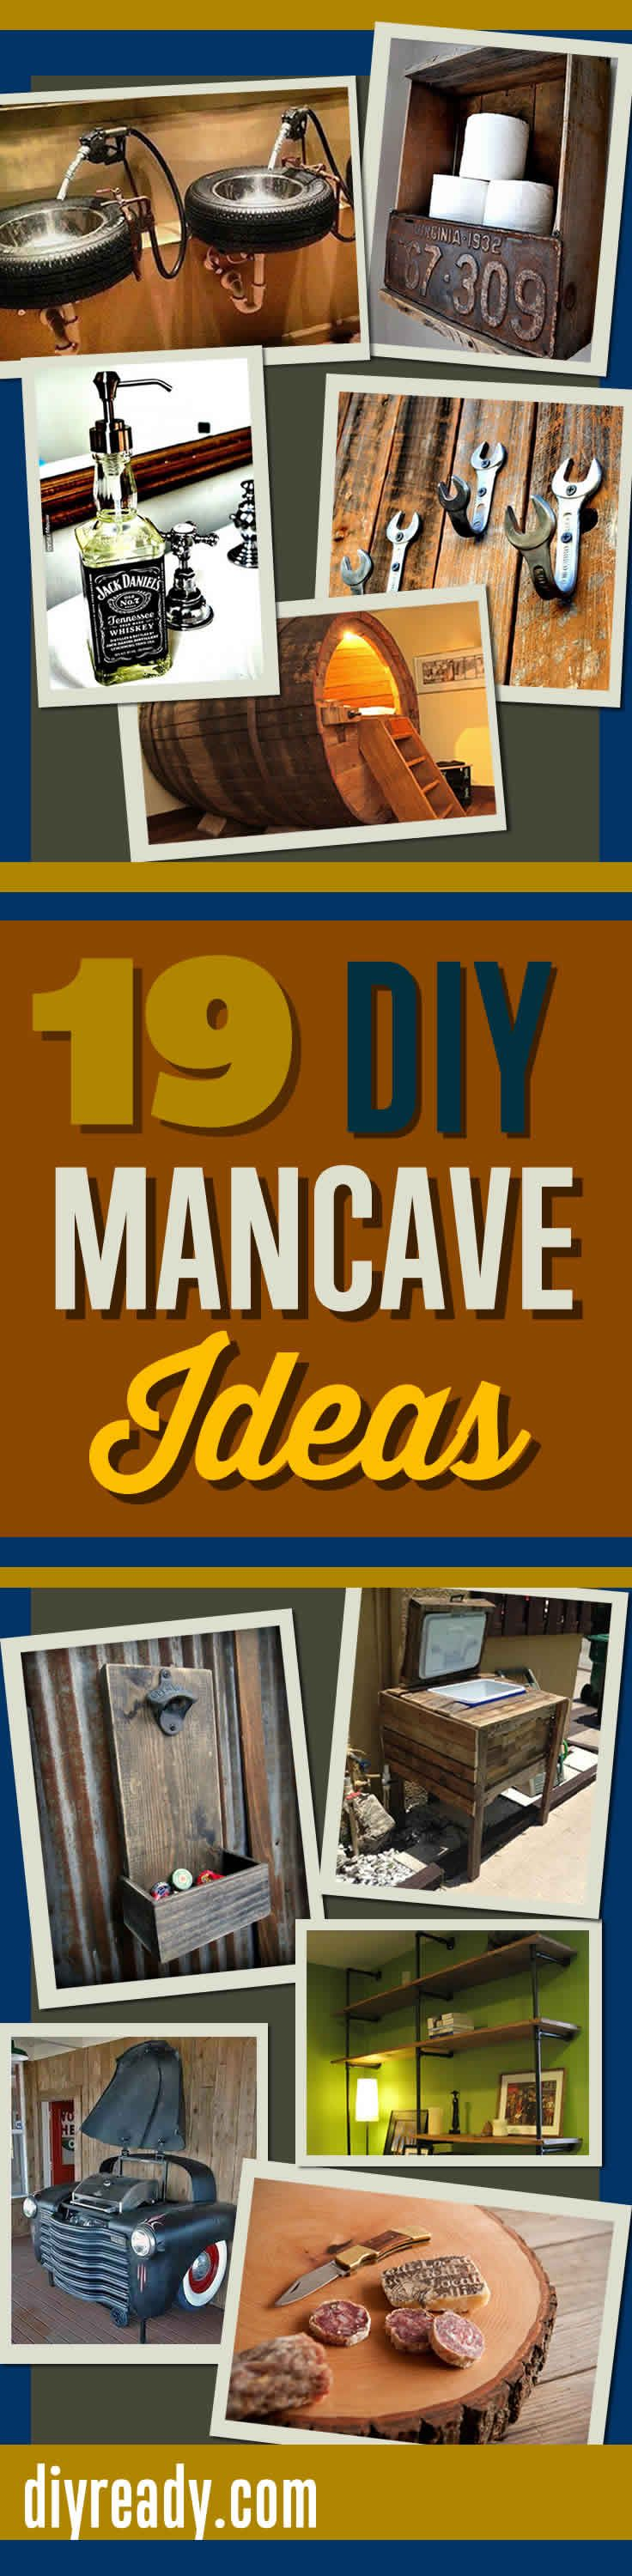 hearts brand clothing Awesome DIY Mancave Ideas Furniture cool decor and best DIYs for decking out the perfect man cave DIY Projects for Men Cool Crafts for Guys and Do It Yourself Tips http  diyready com man cave ideas  diy decor and furniture projects